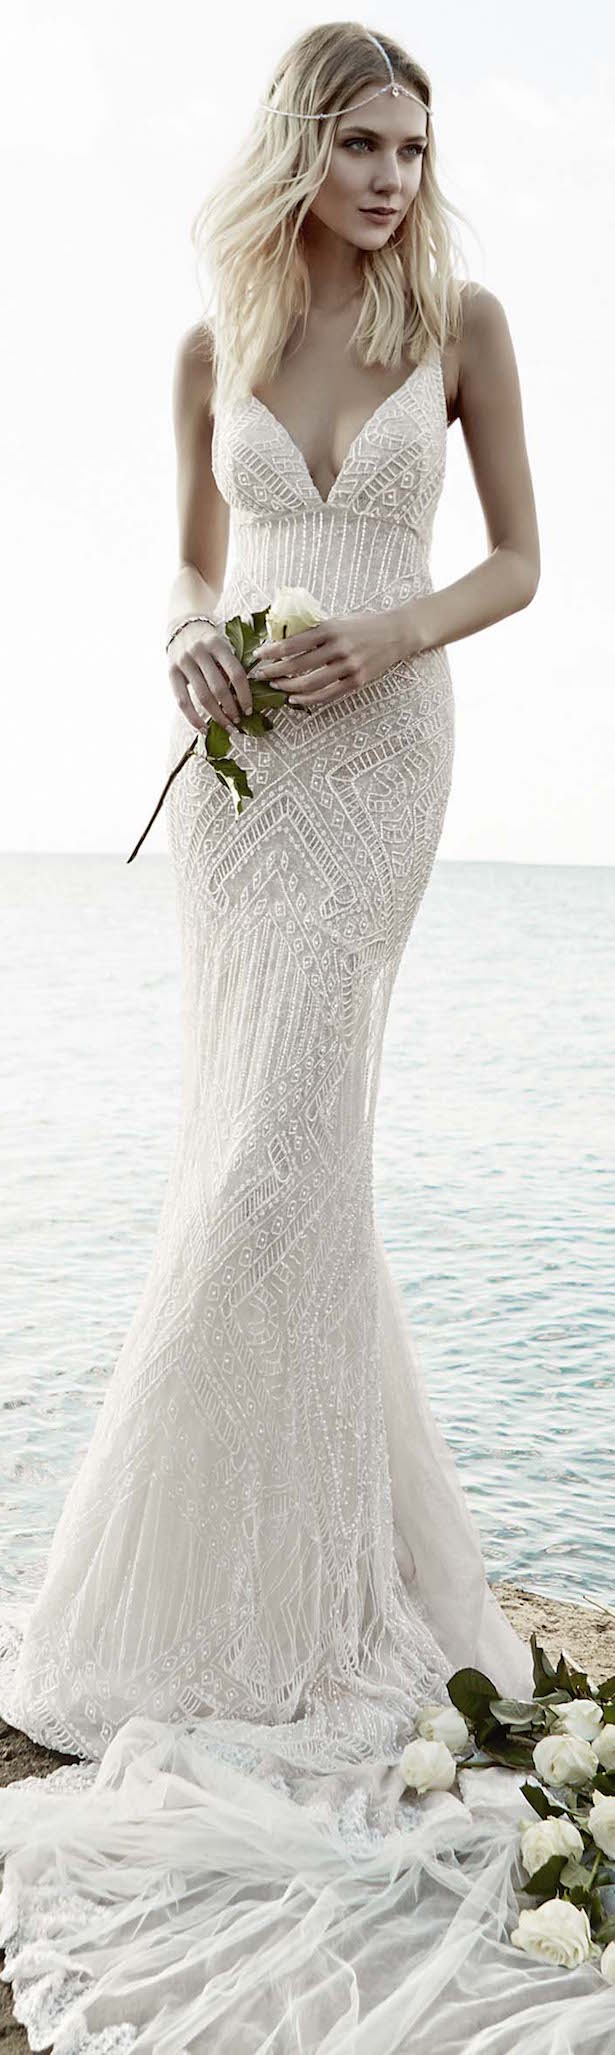 Victoria kyriakides bridal fall 2016 floral for Floral beach wedding dresses